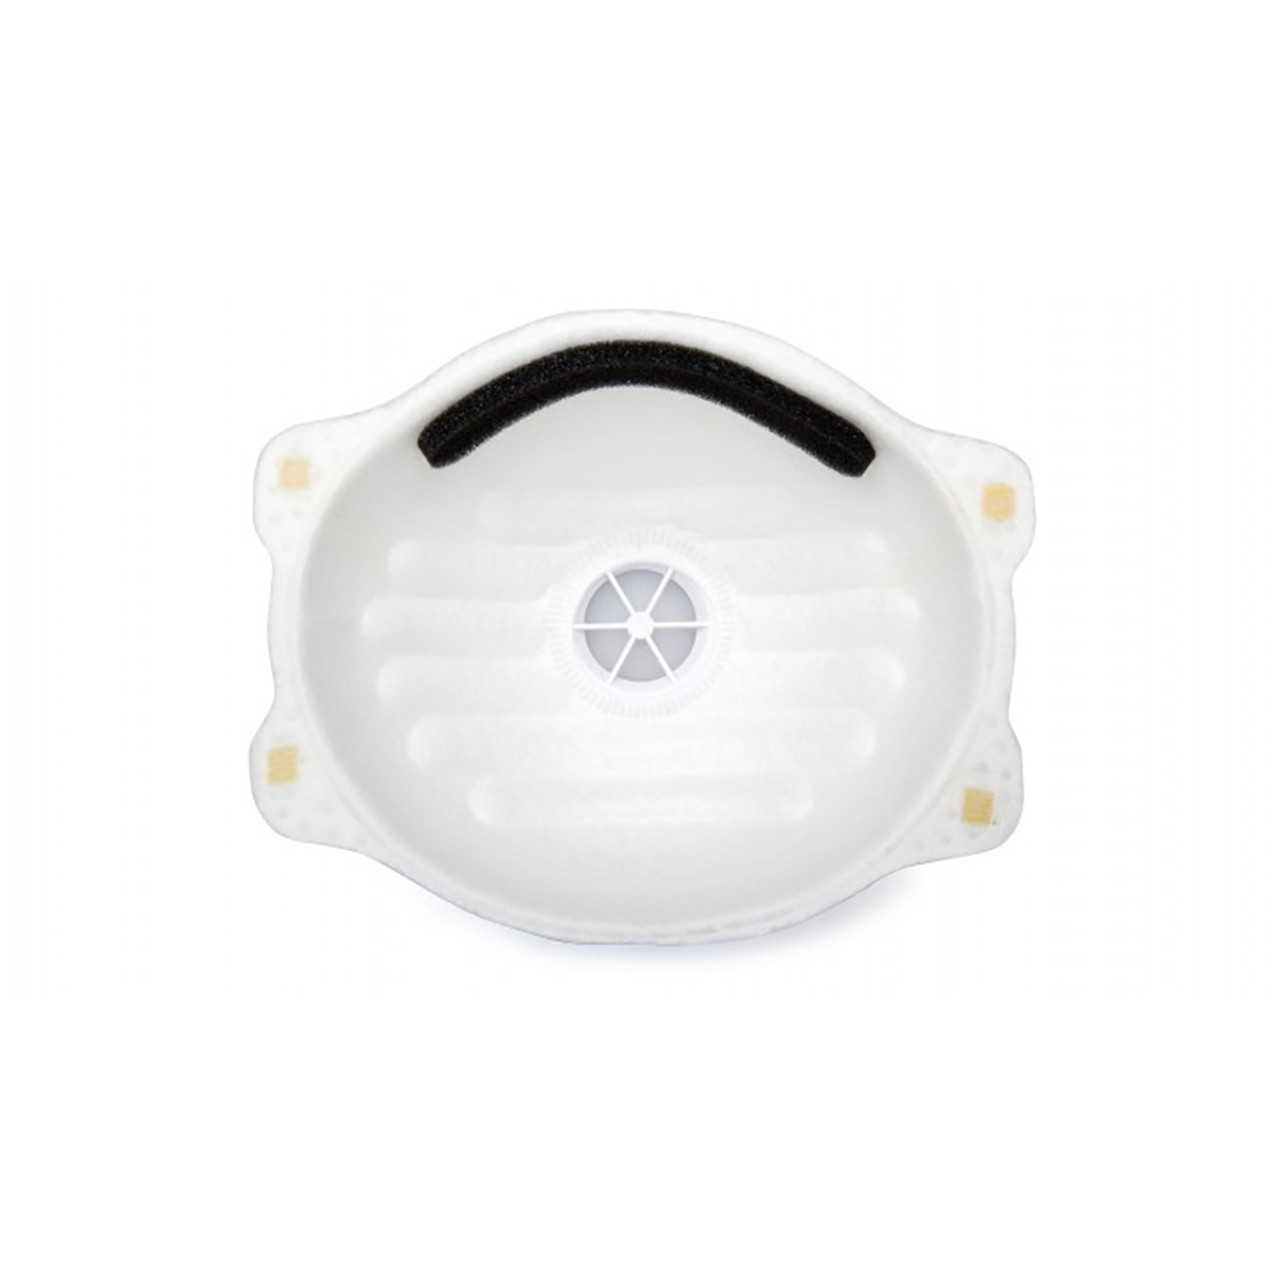 Pyramex Disposable Dust Mask with Valve, Box of 10